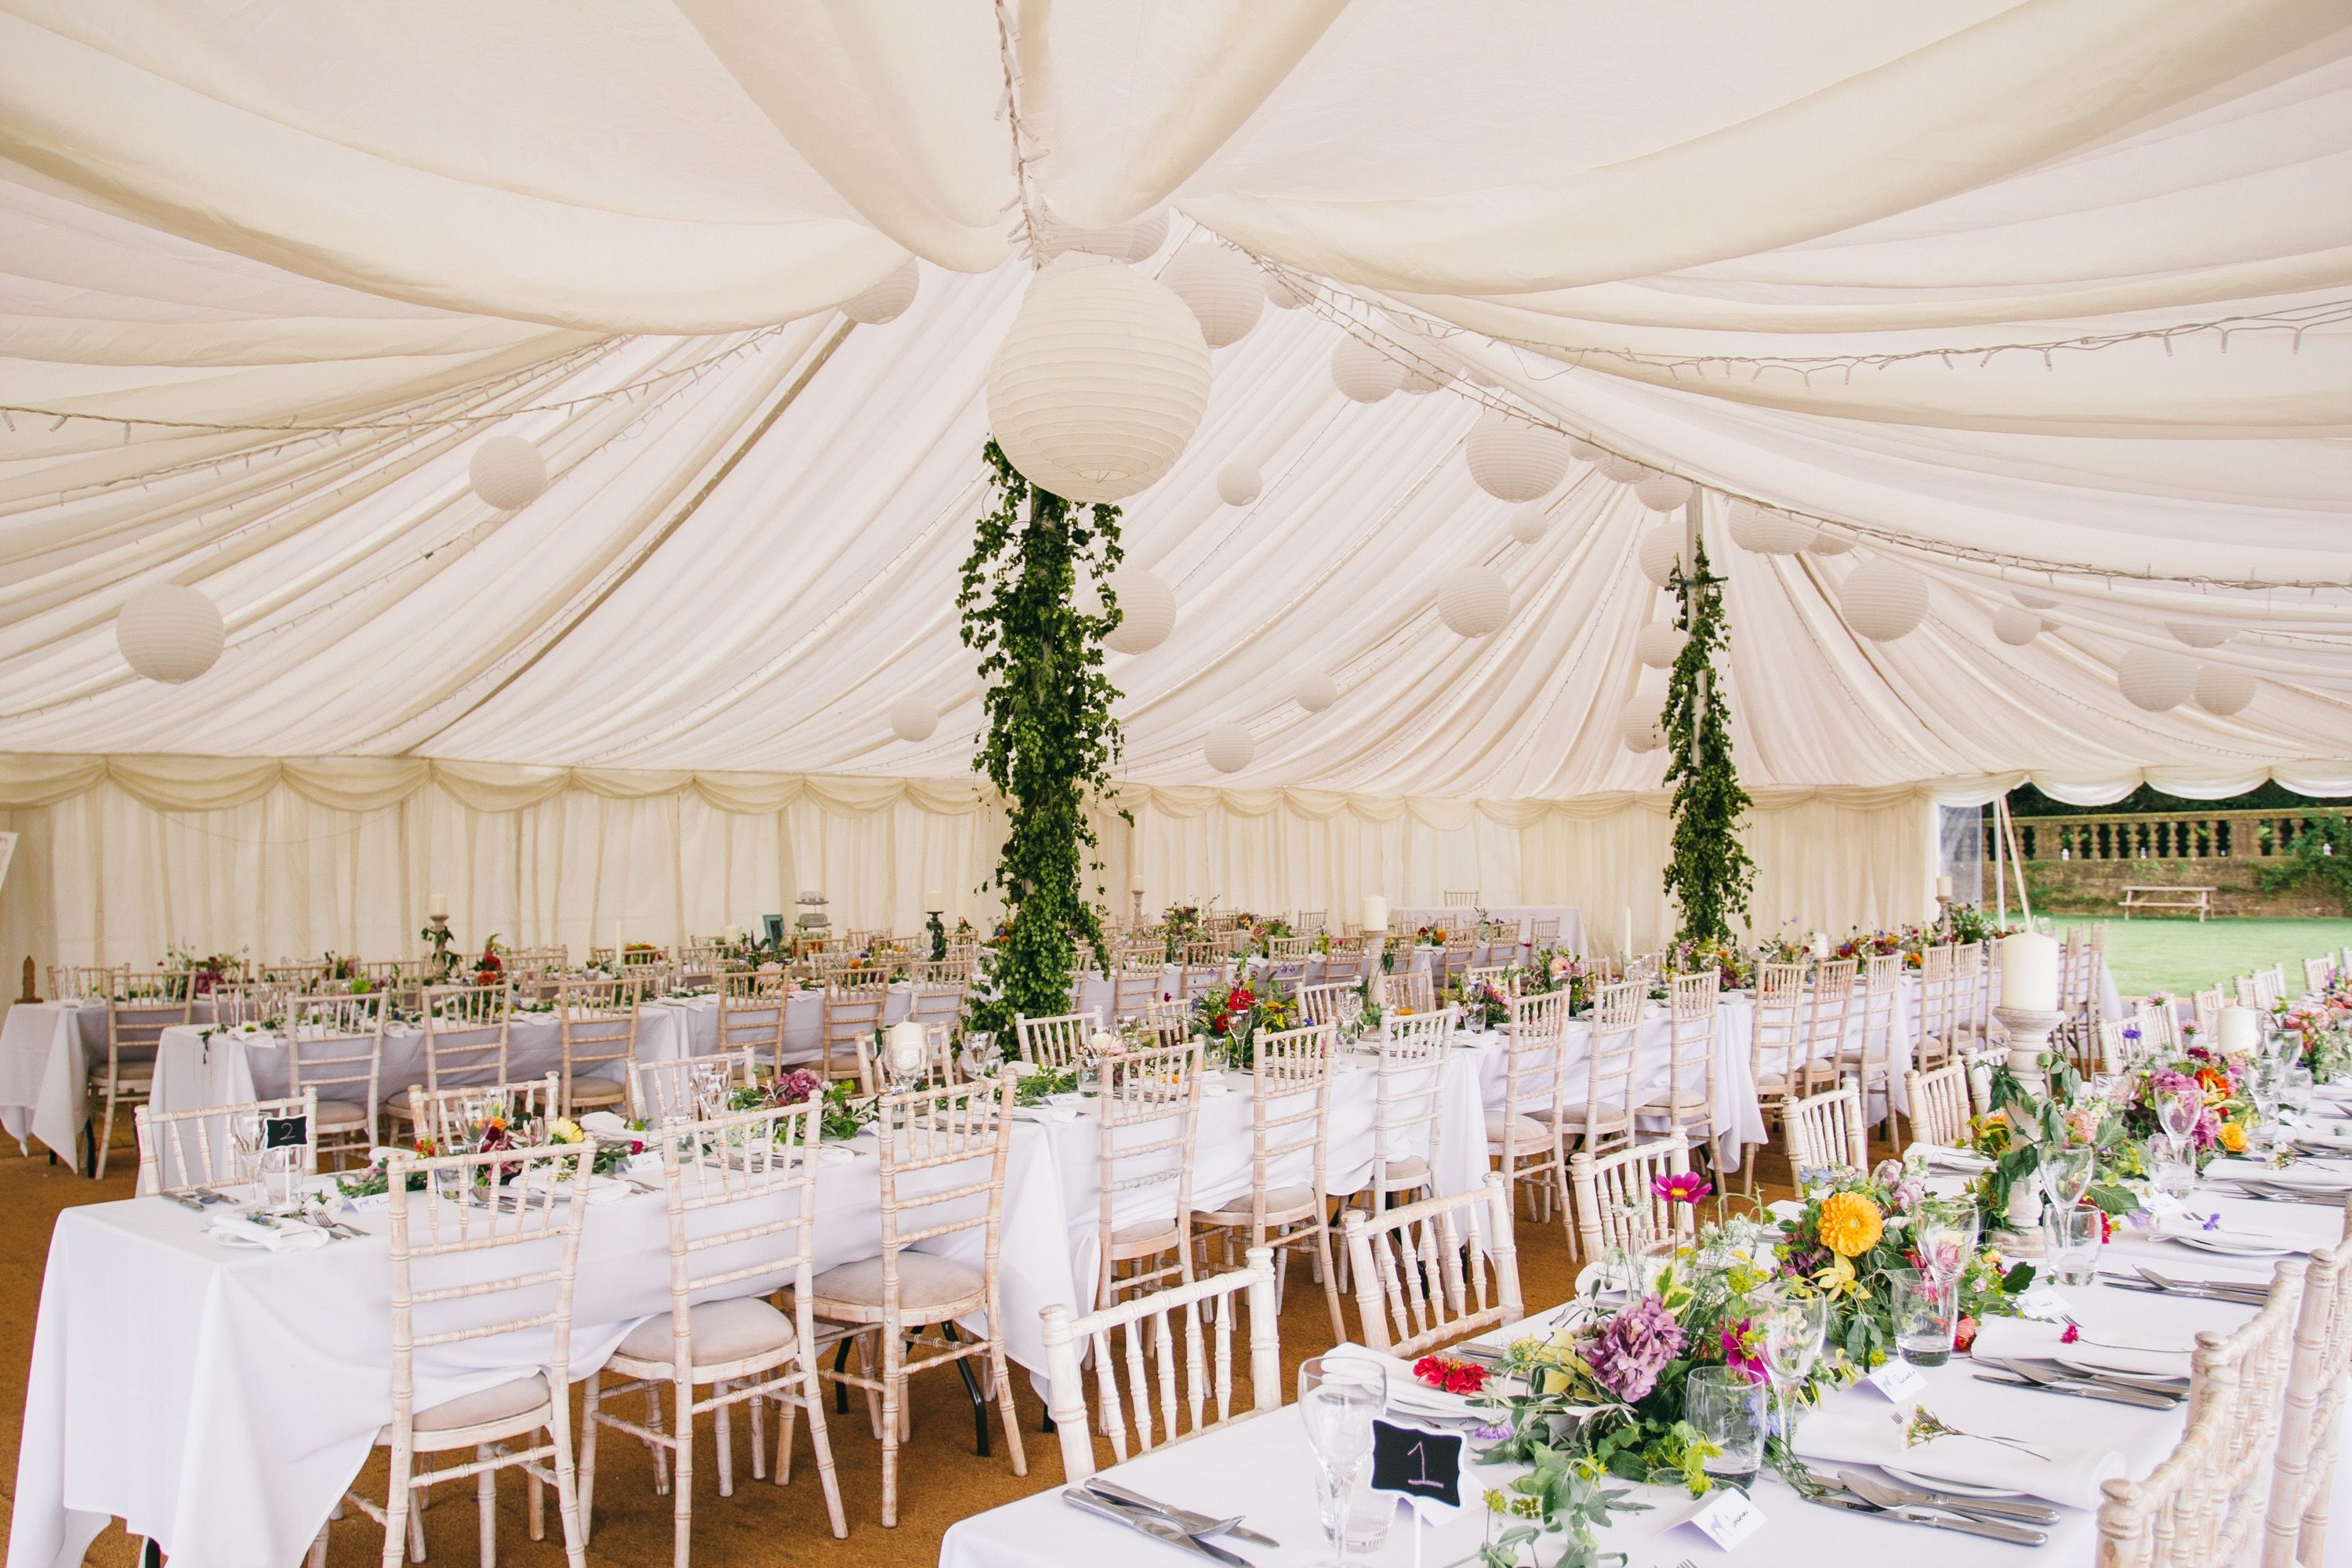 Stunning Marquee Wedding With Chivari Chairs And Long Tables Setting From South West Event Hire Ltd Wedding Chair Hire Marquee Wedding Furniture Hire